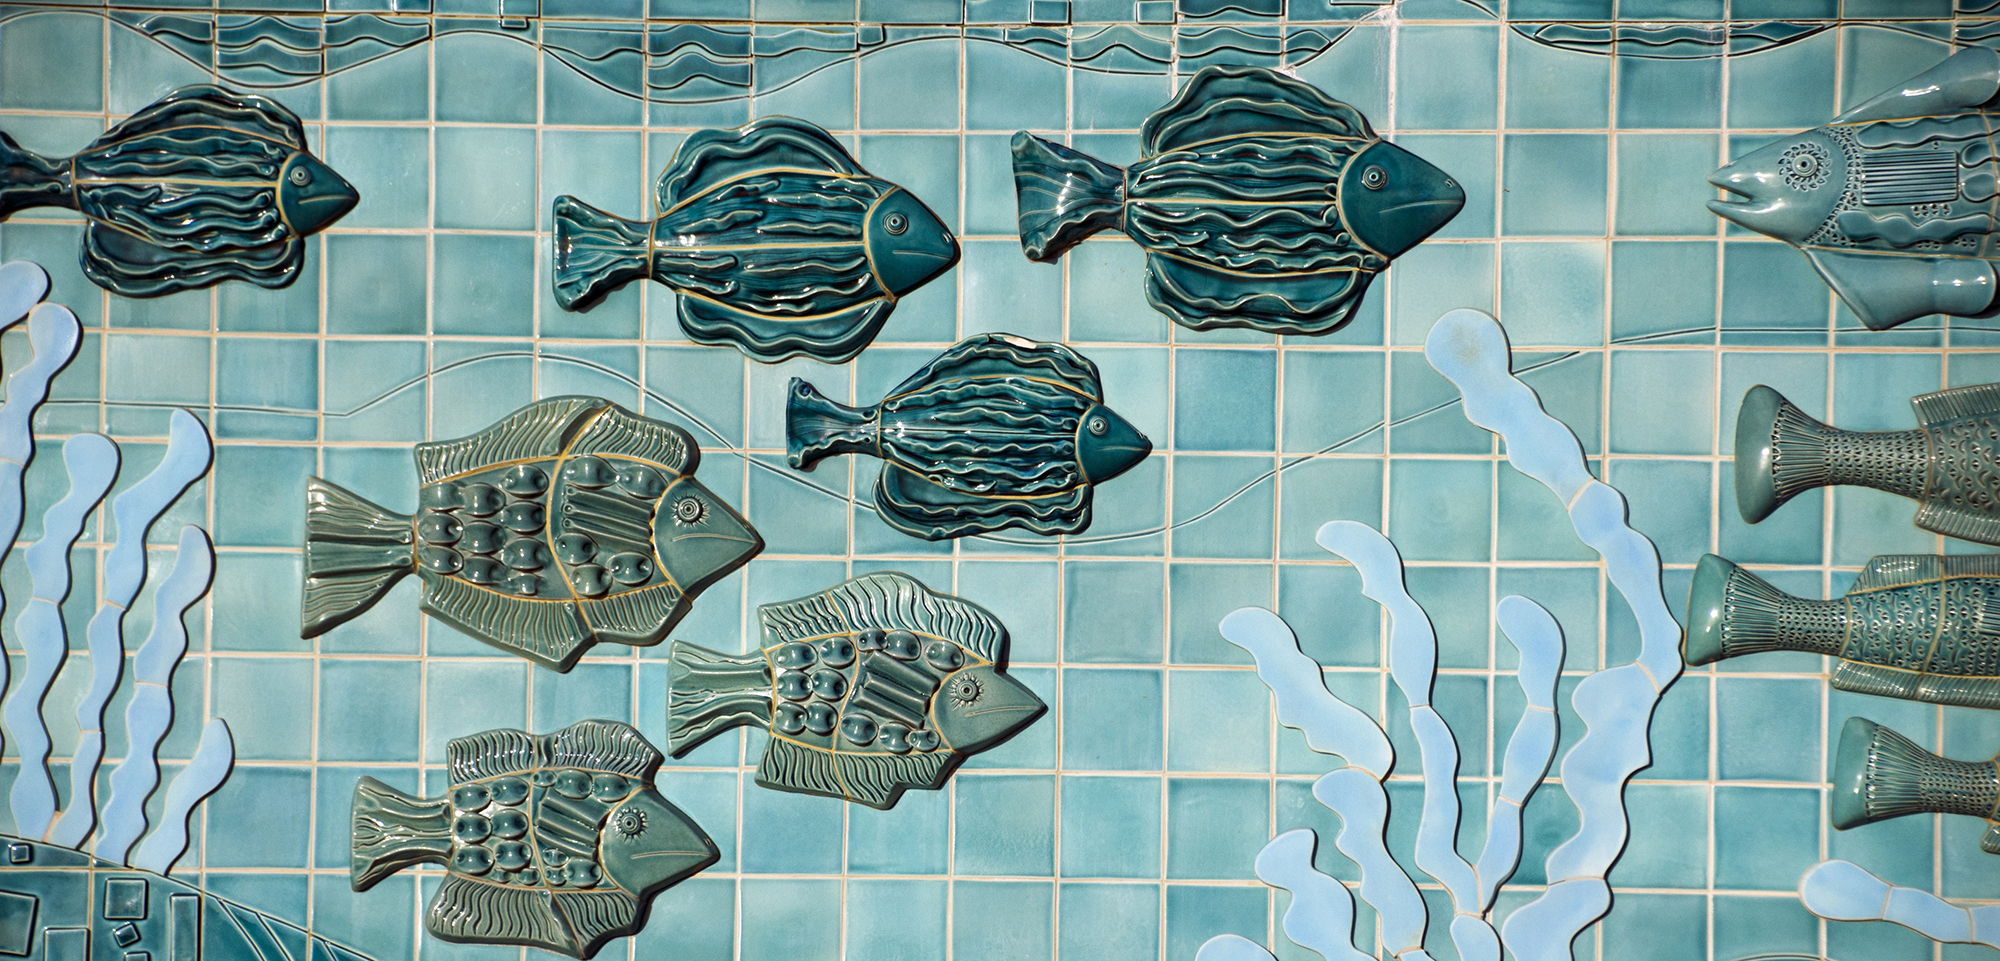 Before people started making ceramic fish, they had to invent pottery—something that may have been done to help with processing fish. Photo by Mitch Diamond/Ocean/Corbis